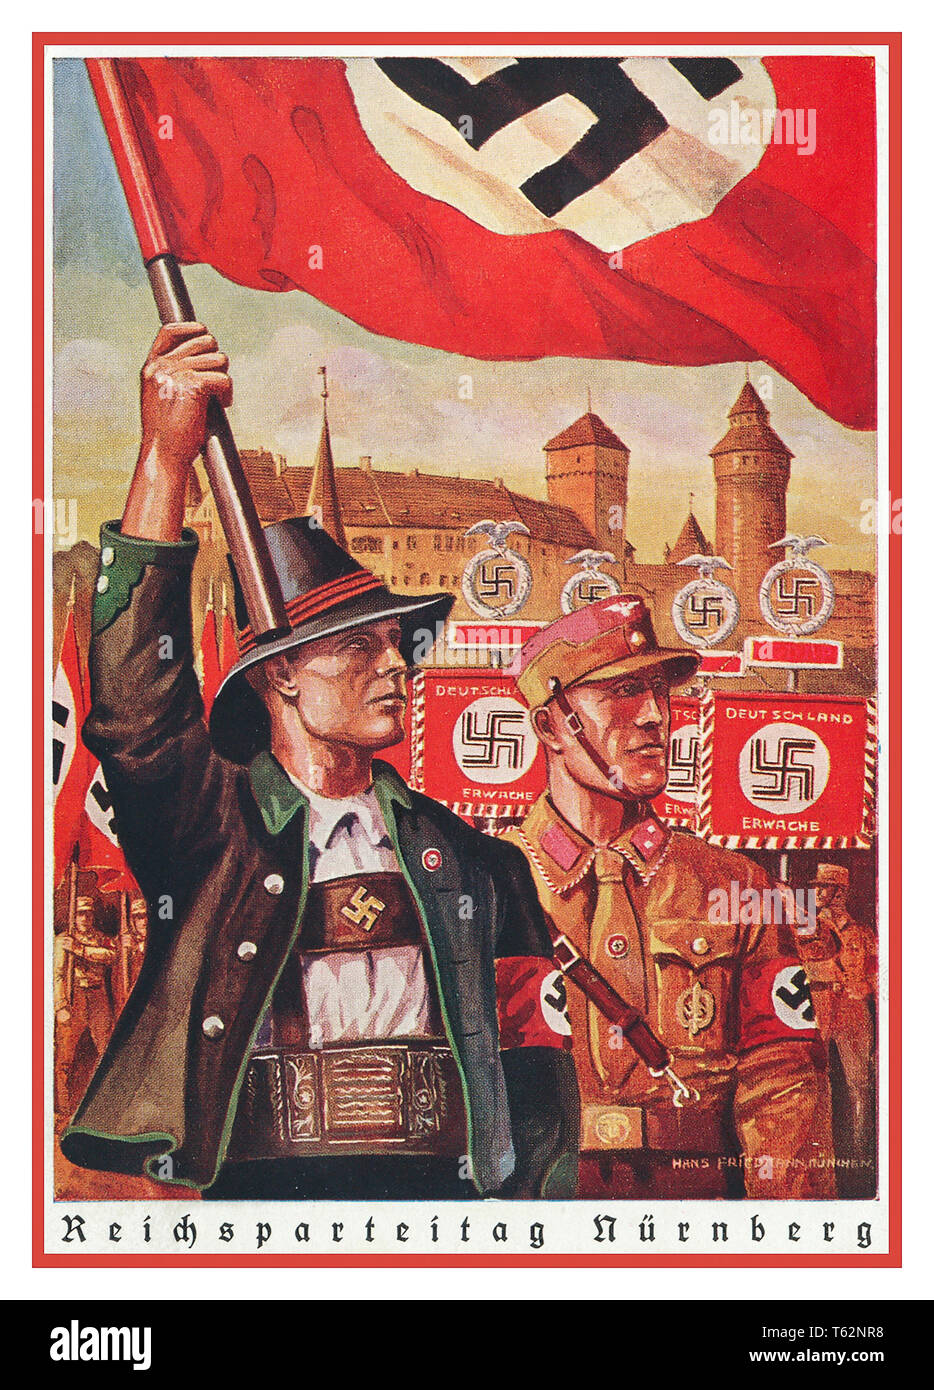 Vintage 1930's Nazi Propaganda Postcard Poster REICHSPARTEITAG NUREMBERG illustrating Swastika Flags Banners with traditional German Man in Bavarian style clothing and Brown Shirt Nazi Guard behind in Nuremberg NSDAP rally party convention situation - Stock Image